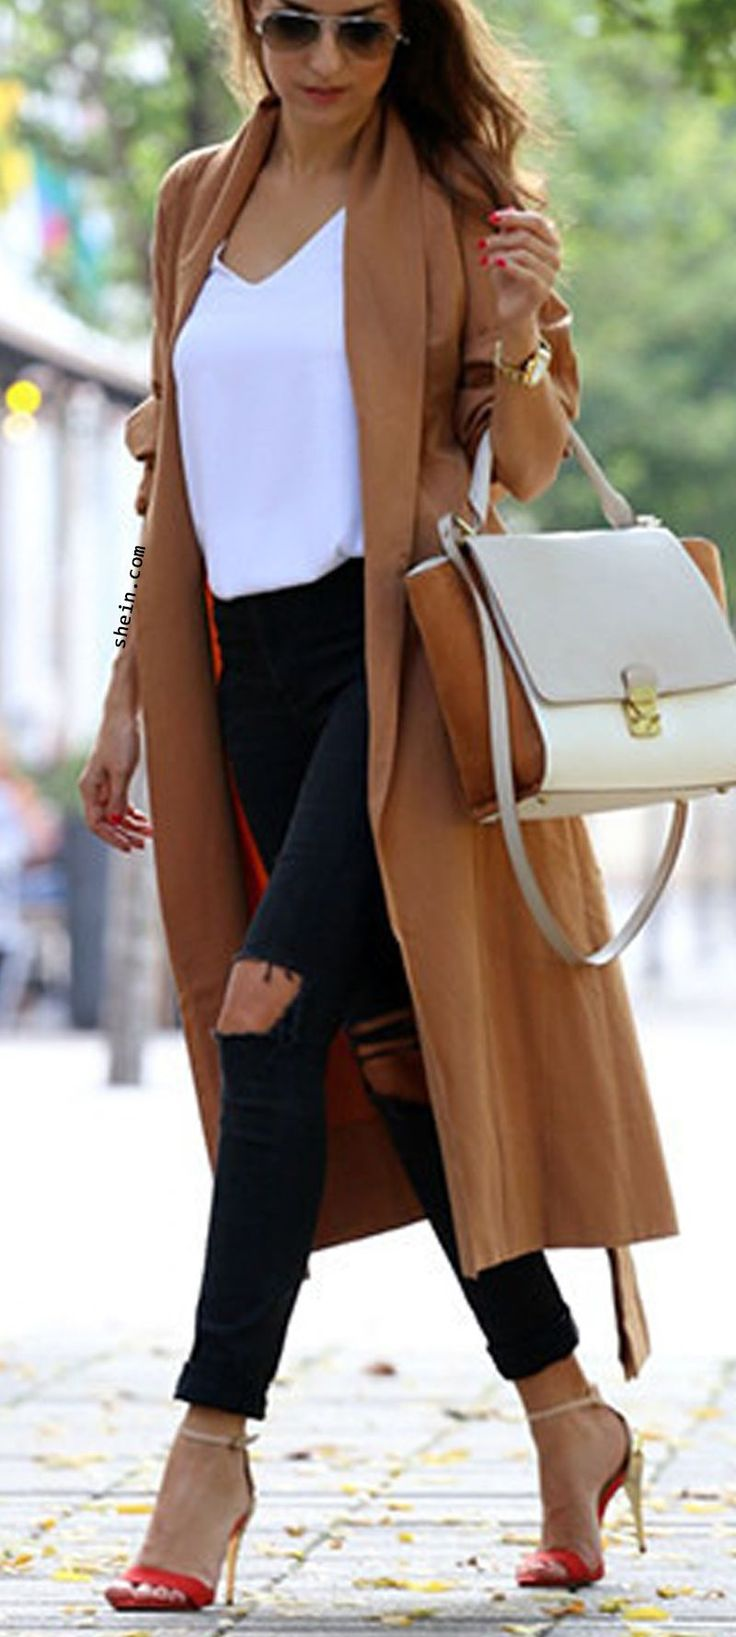 Stylish fall fashion-Brown trench coat outfit.